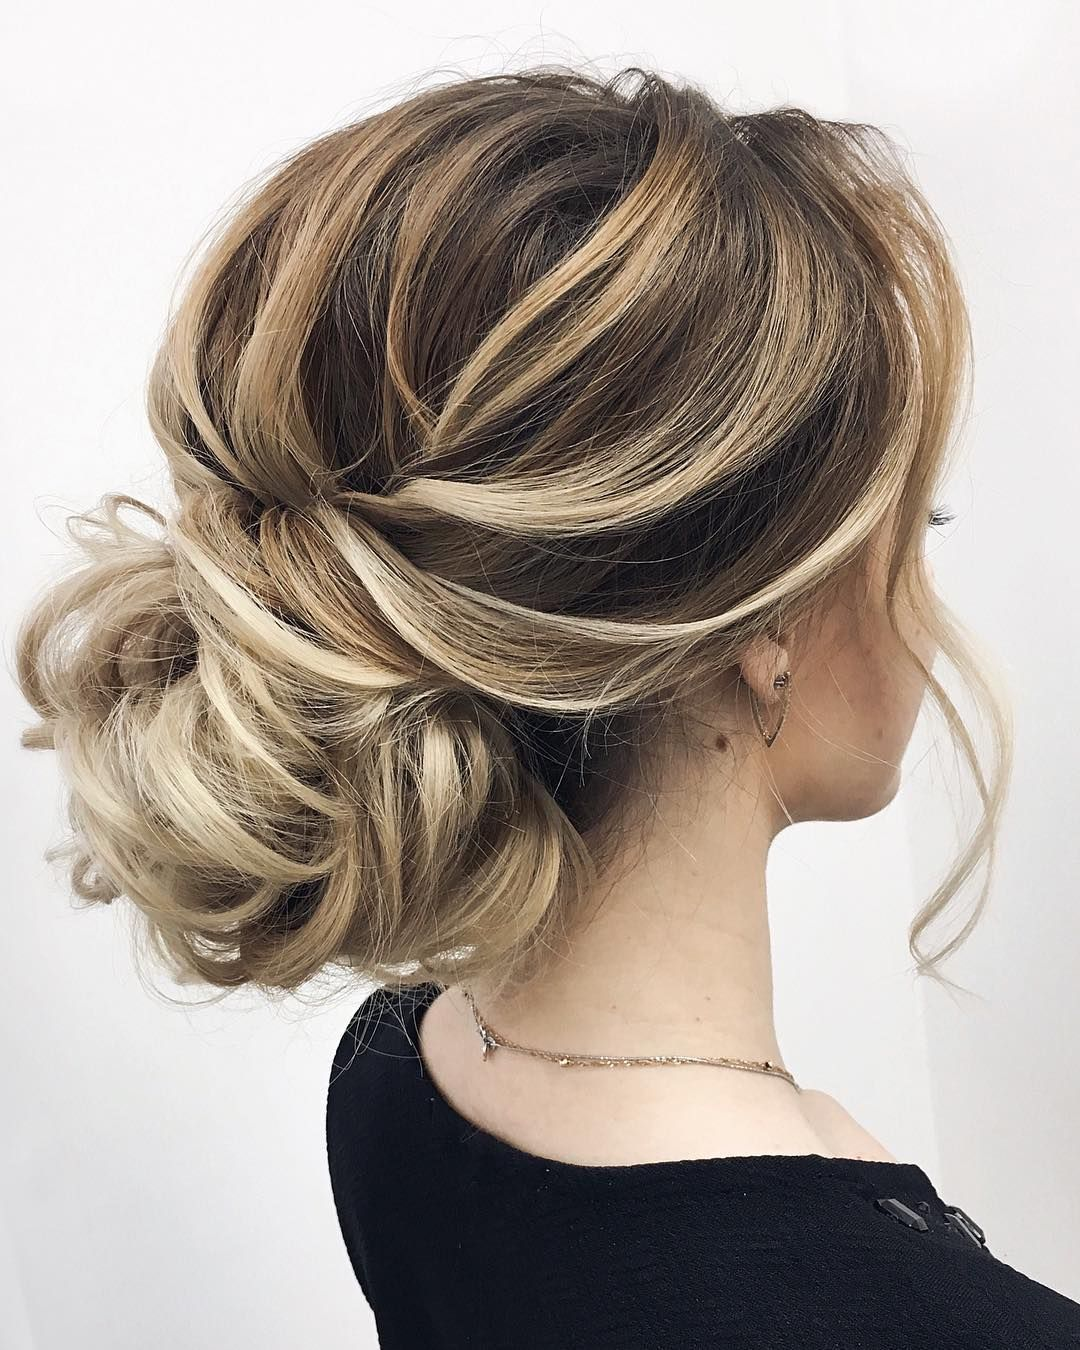 17 Wedding Hairstyles You Ll Adore: 87 Fabulous Wedding Hairstyles For Every Wedding Dress